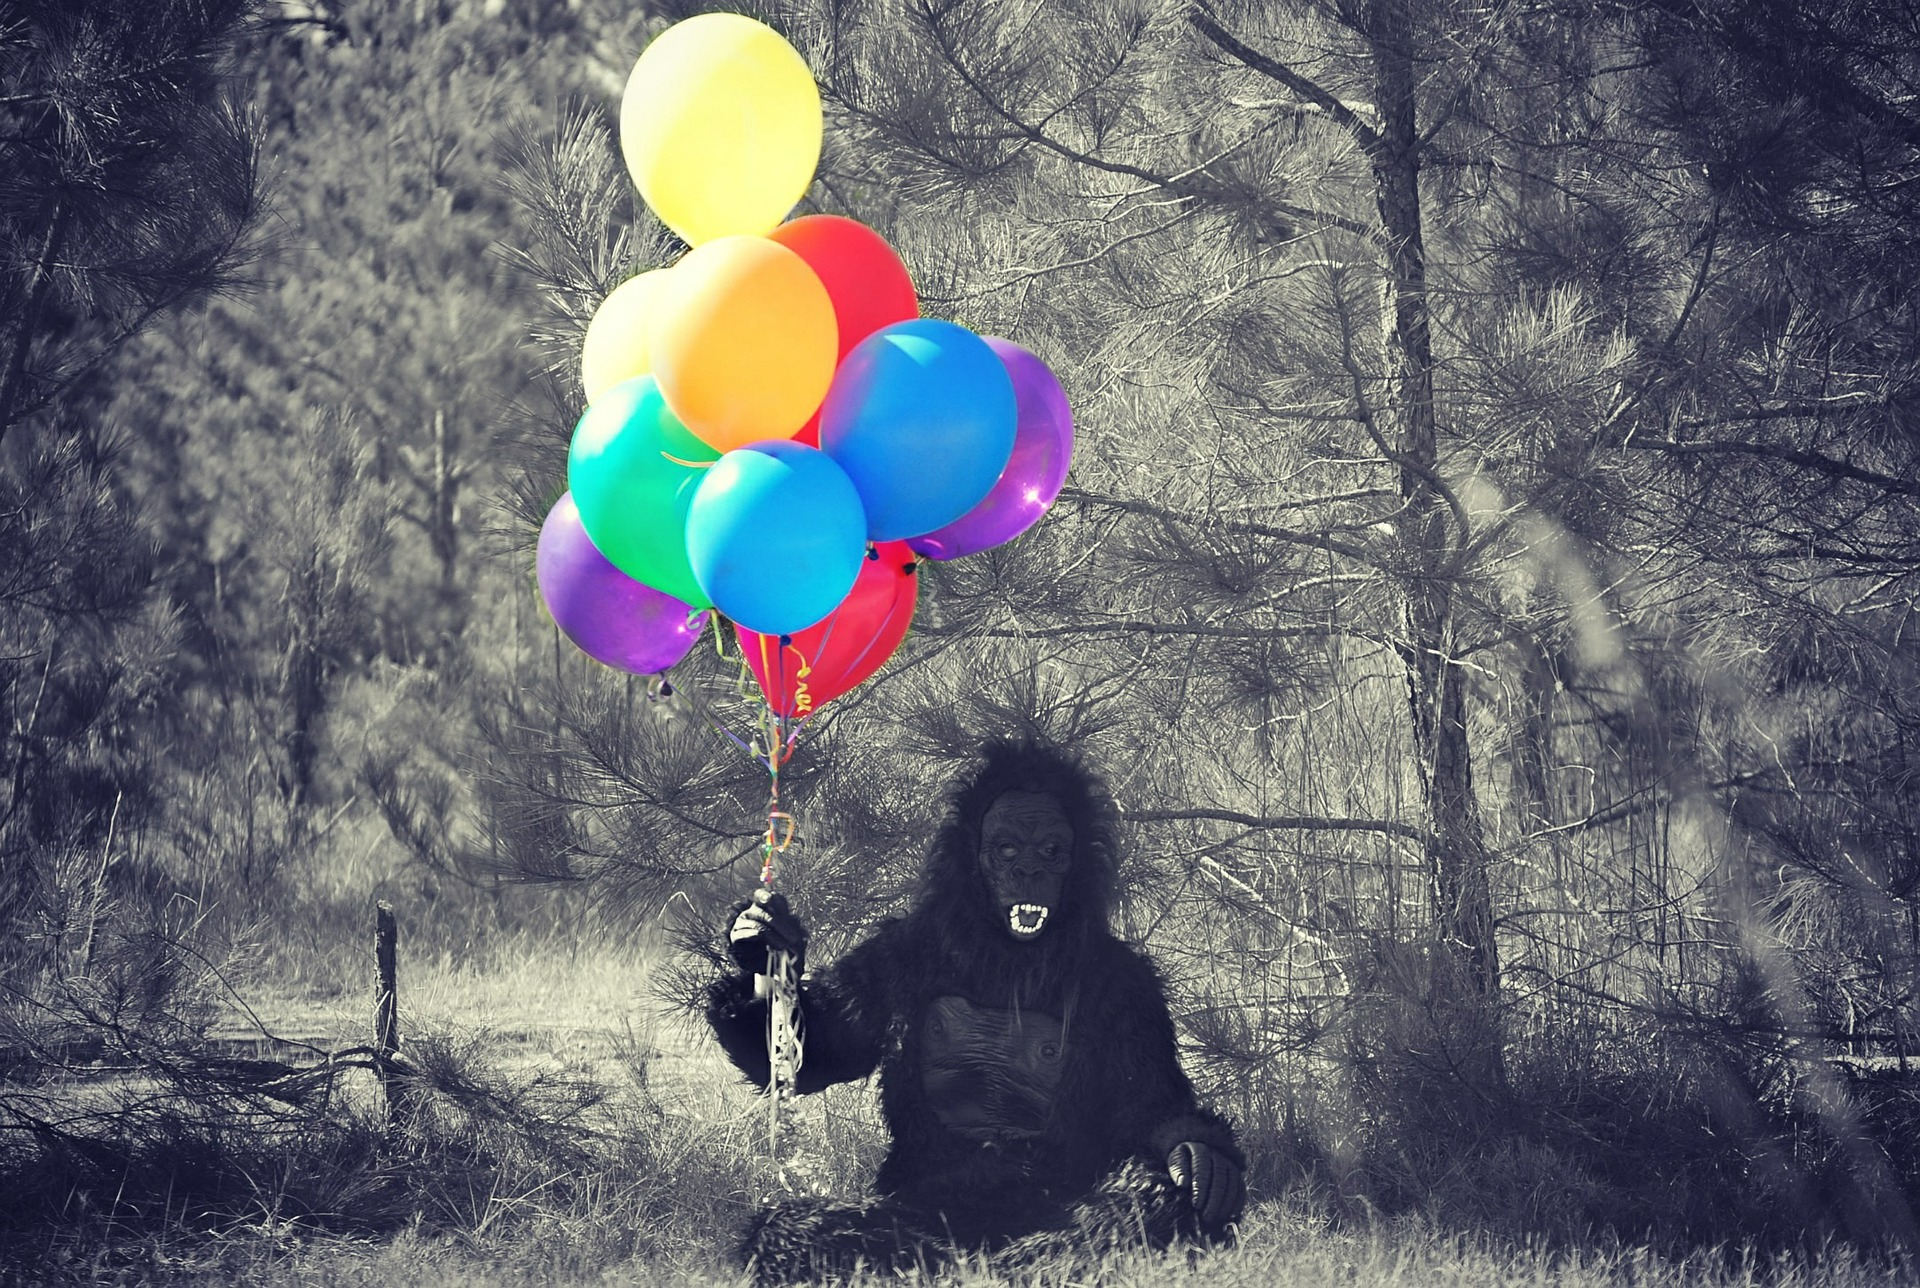 Person in animal costume with balloons.